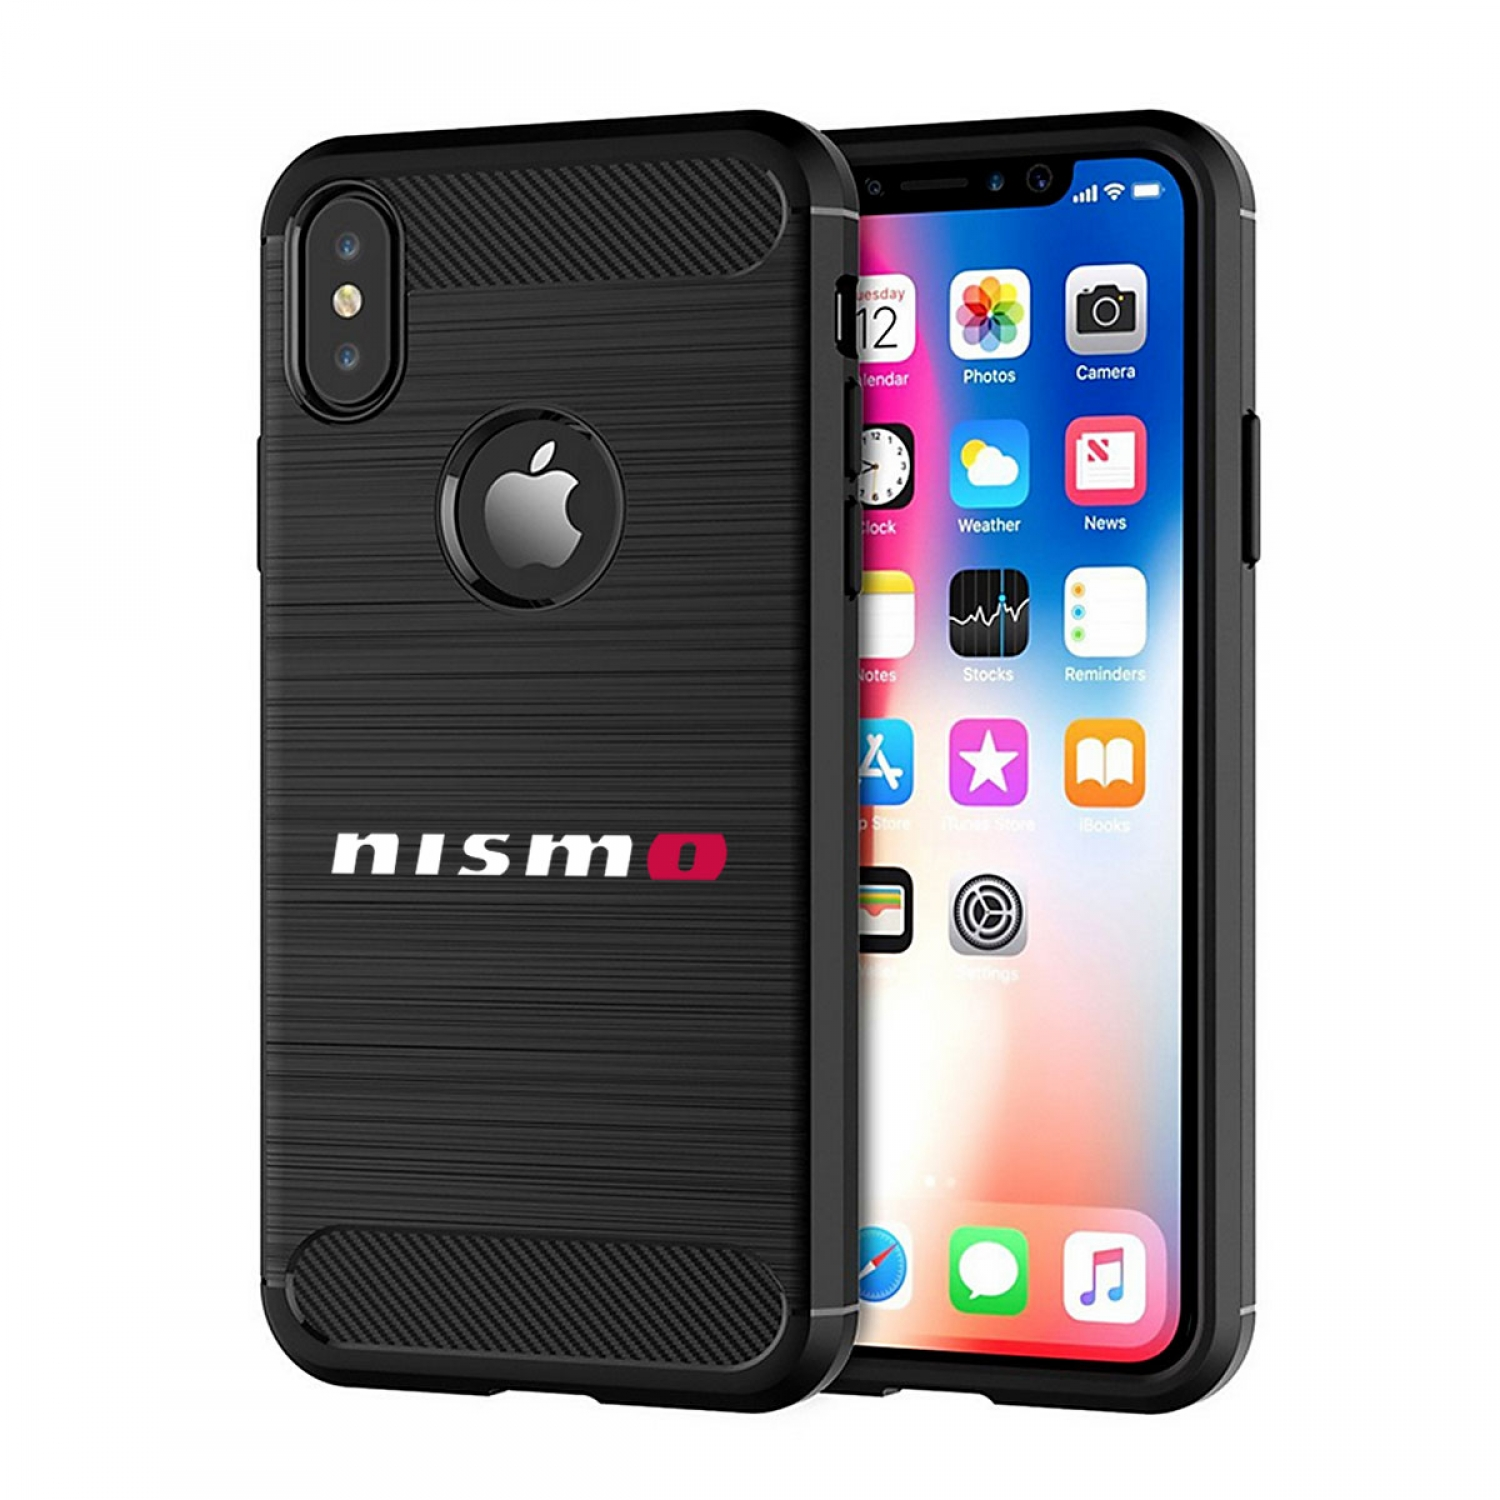 Nissan NISMO iPhone X TPU Shockproof Black Carbon Fiber Textures Stripes Cell Phone Case